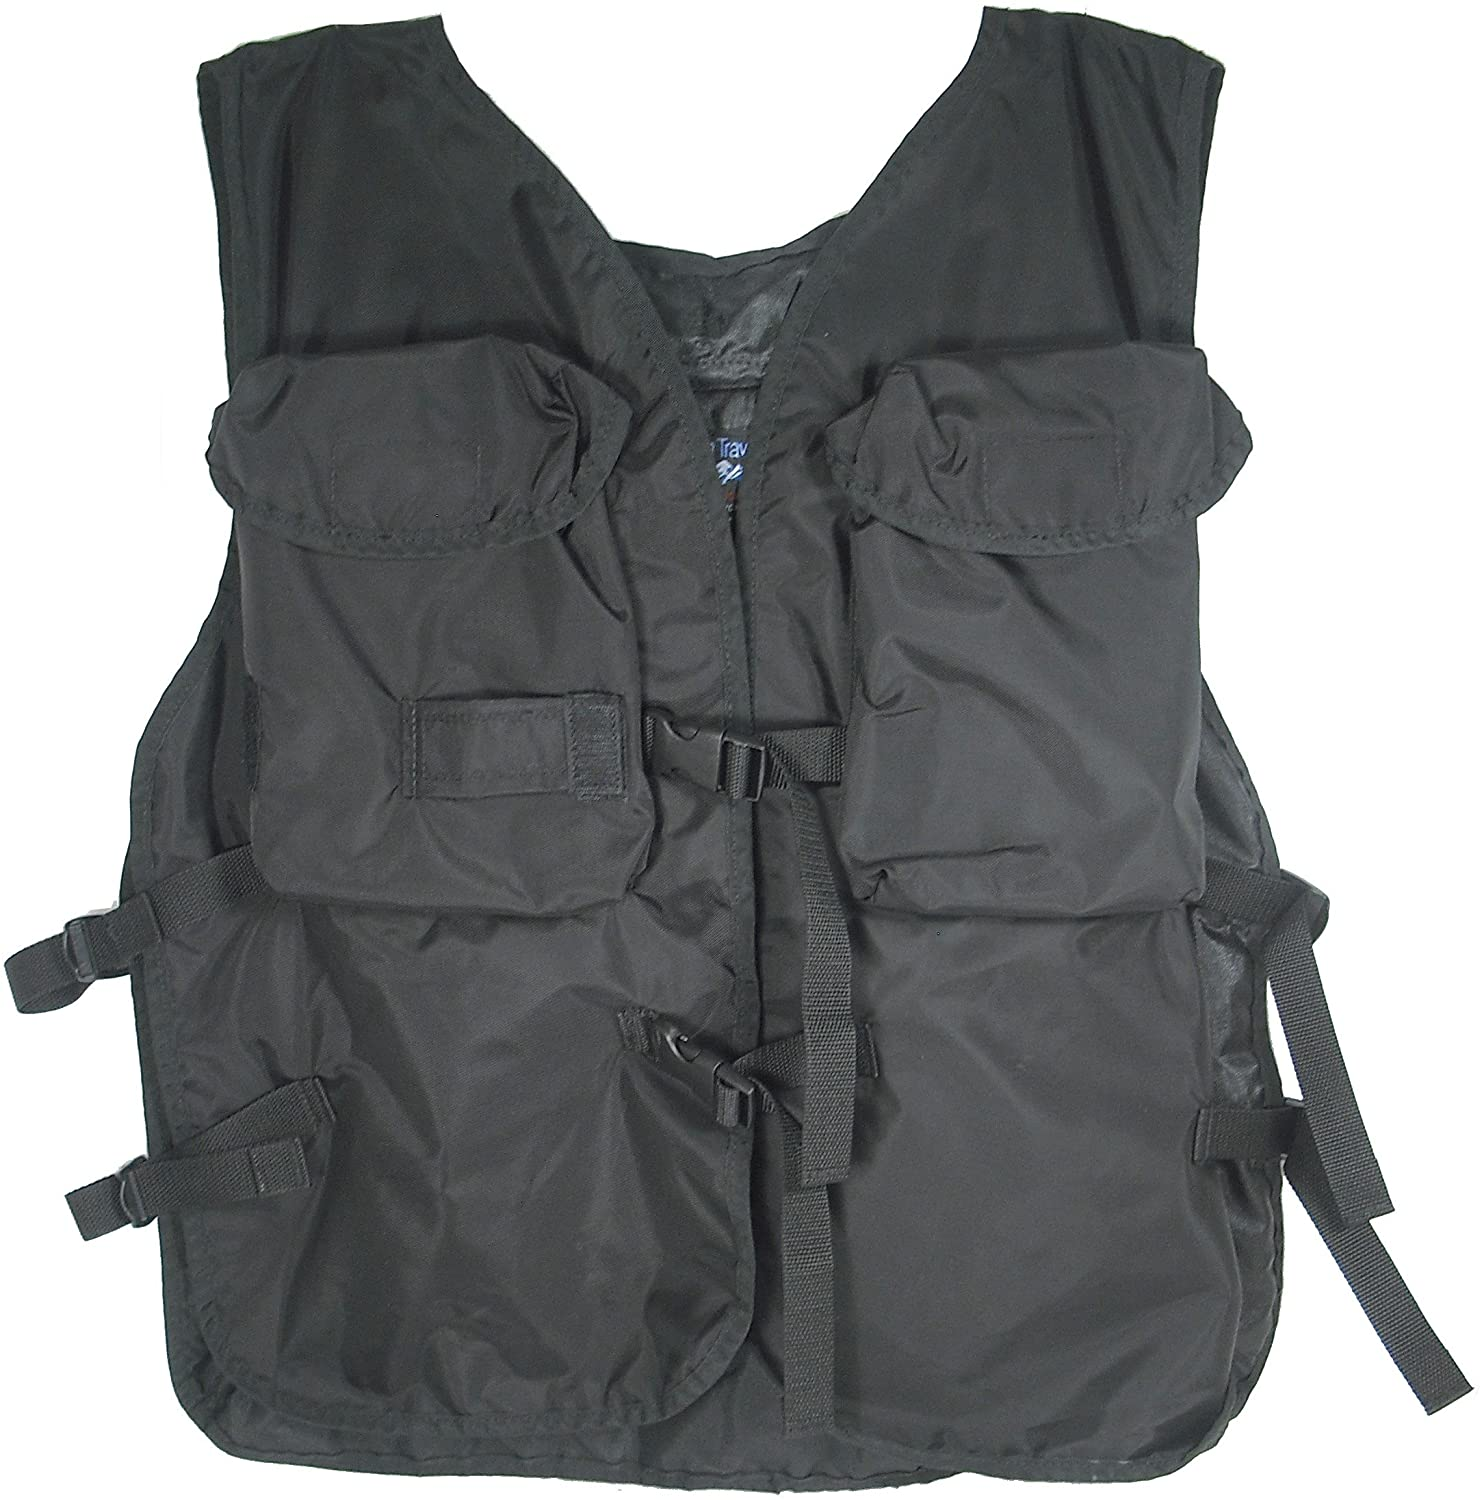 Tough Traveler Tier One Tactical Vest - Made in USA